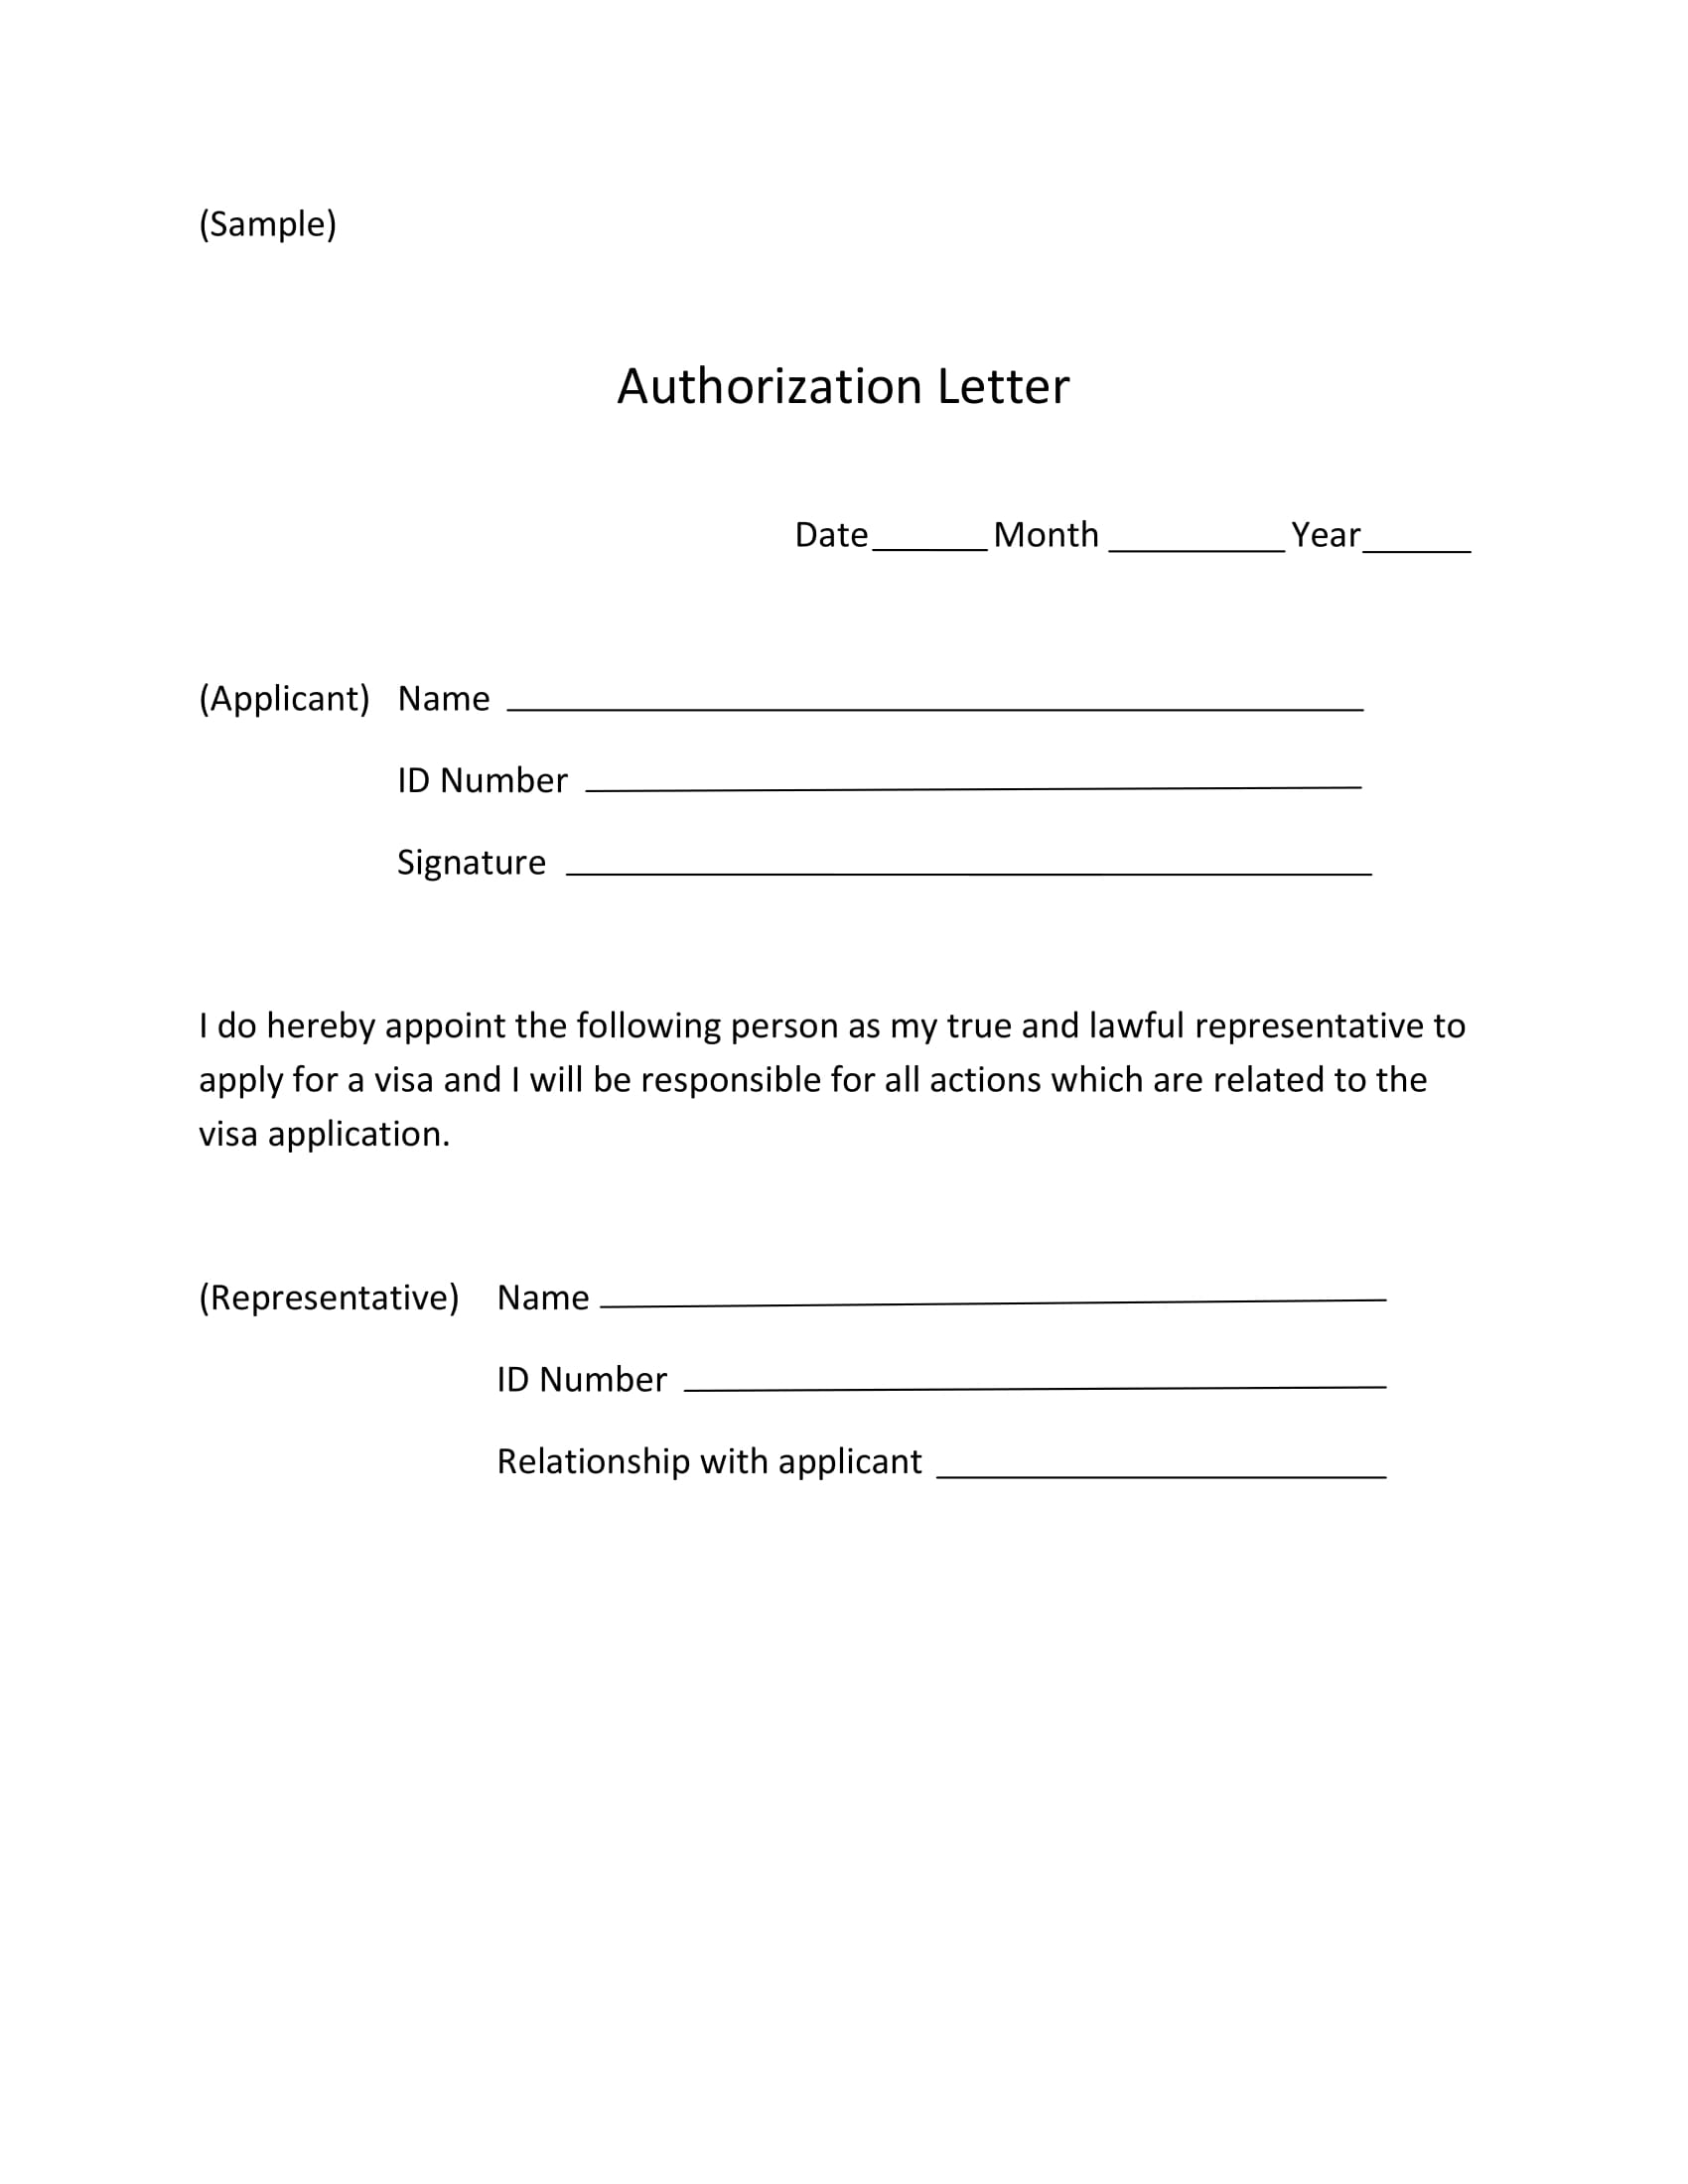 authorization letter for visa application and receipt example 1